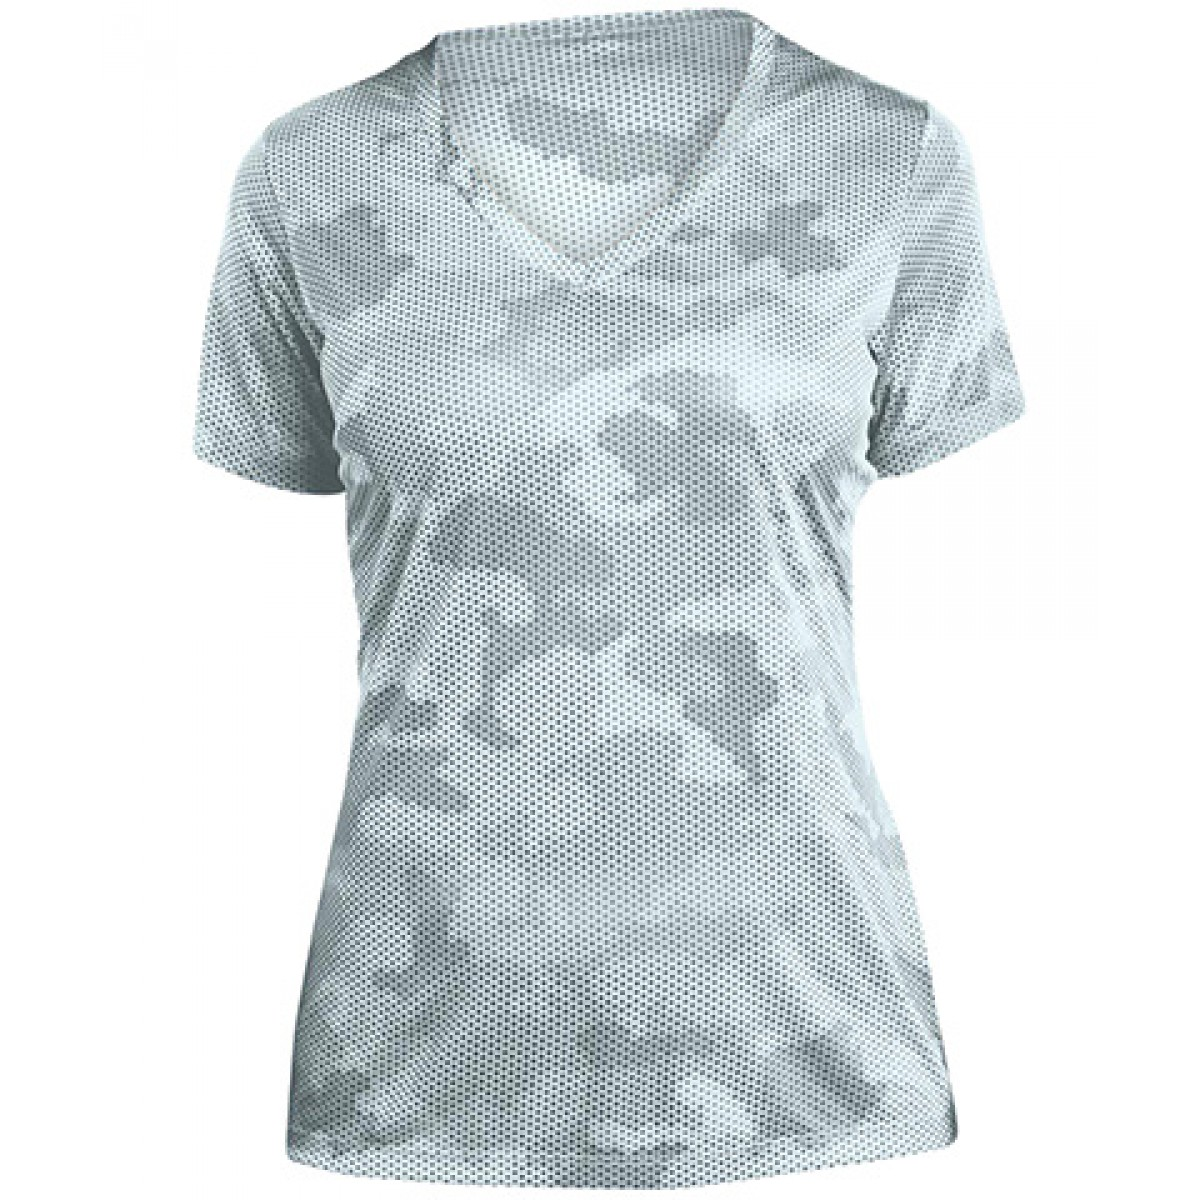 Ladies CamoHex V-Neck Tee-White-L